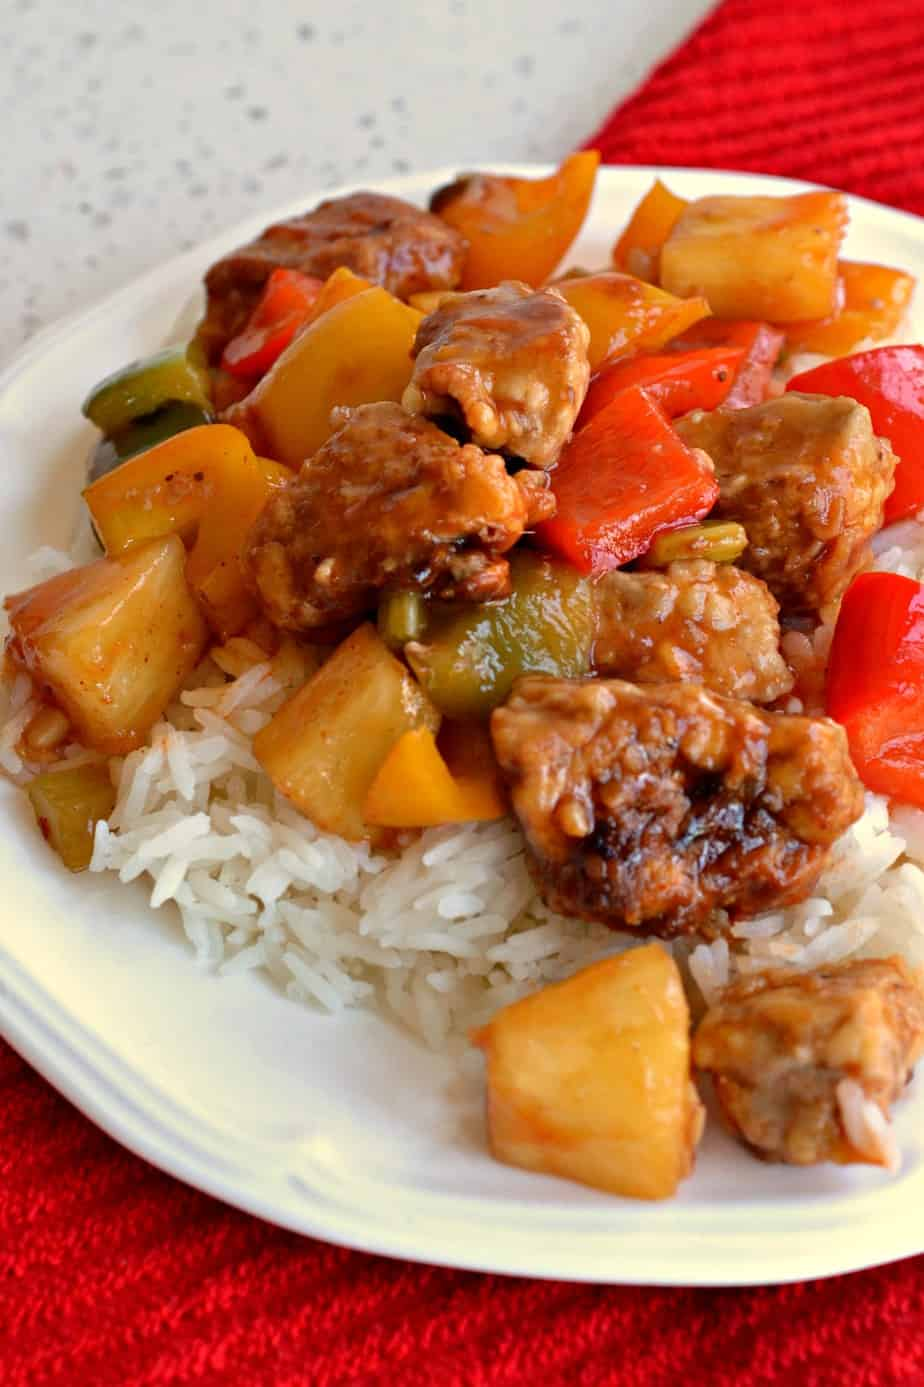 Sweet and Sour Pork is incredibly delicious and with a little planning it comes together quite quickly.